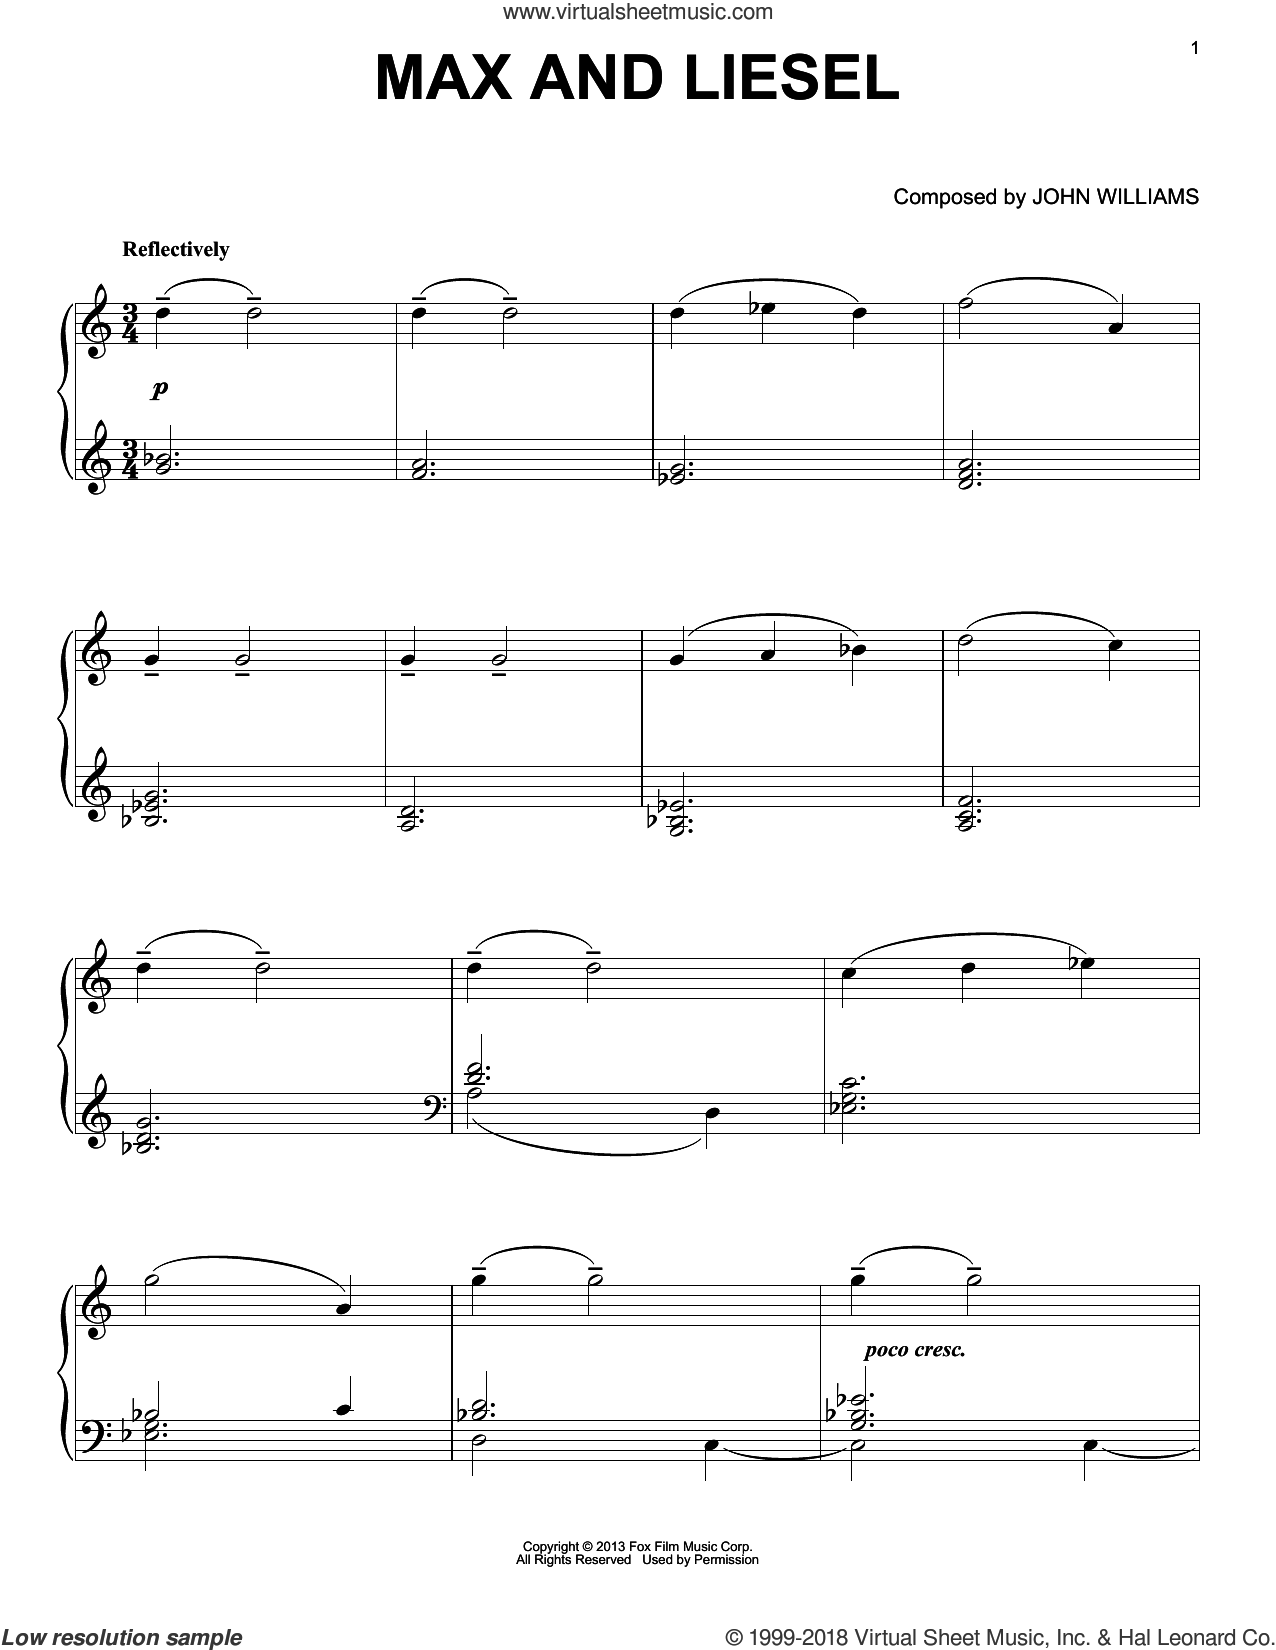 Max And Liesel sheet music for piano solo by John Williams